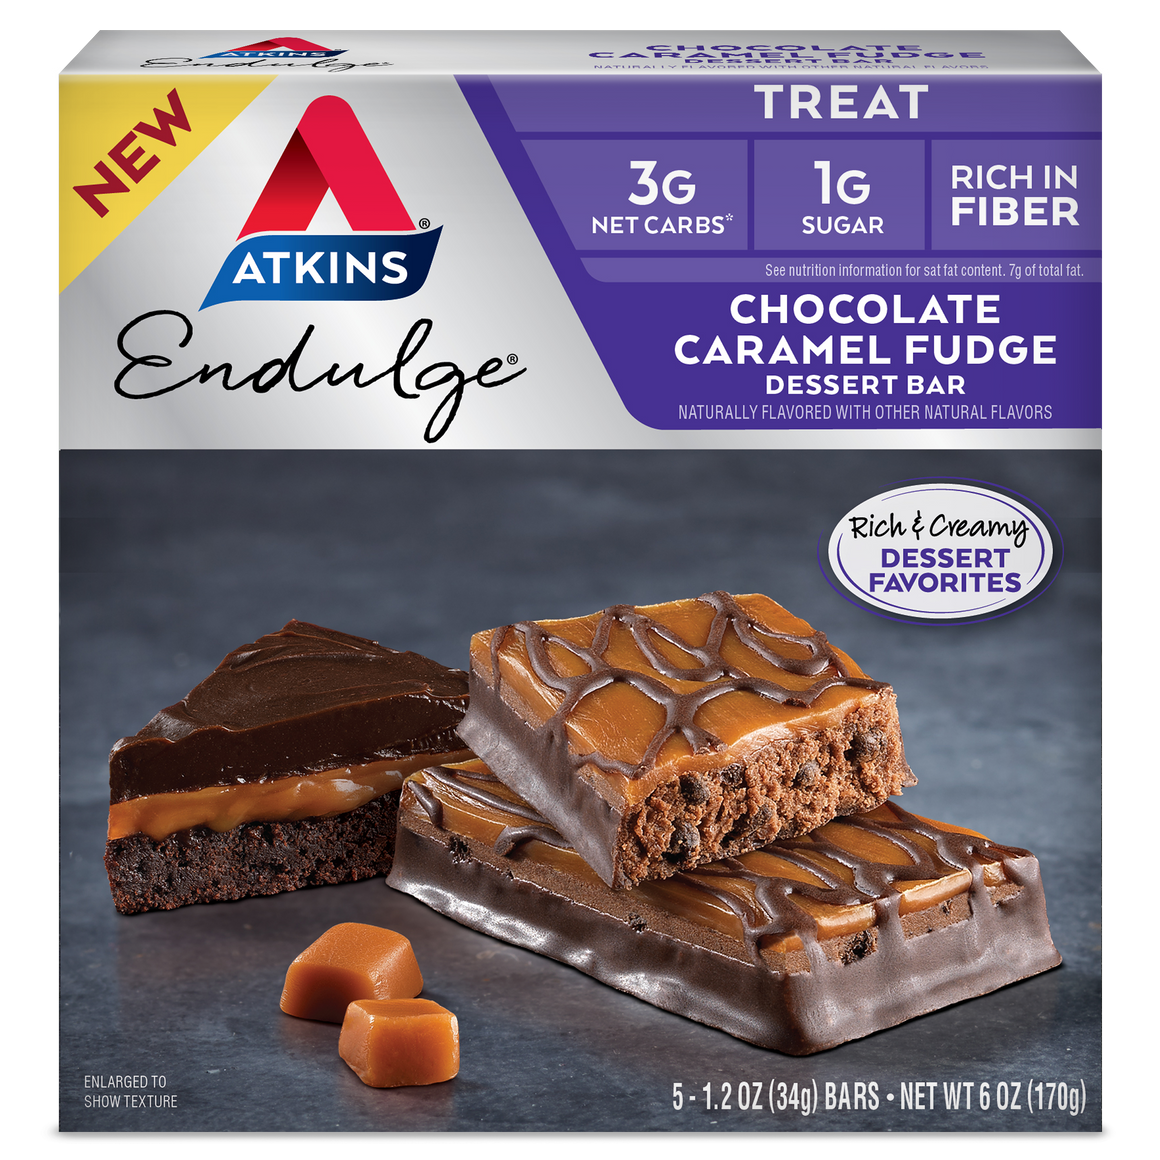 Atkins Endulge Treat - Chocolate Caramel Fudge Dessert Bars - 5 Bars